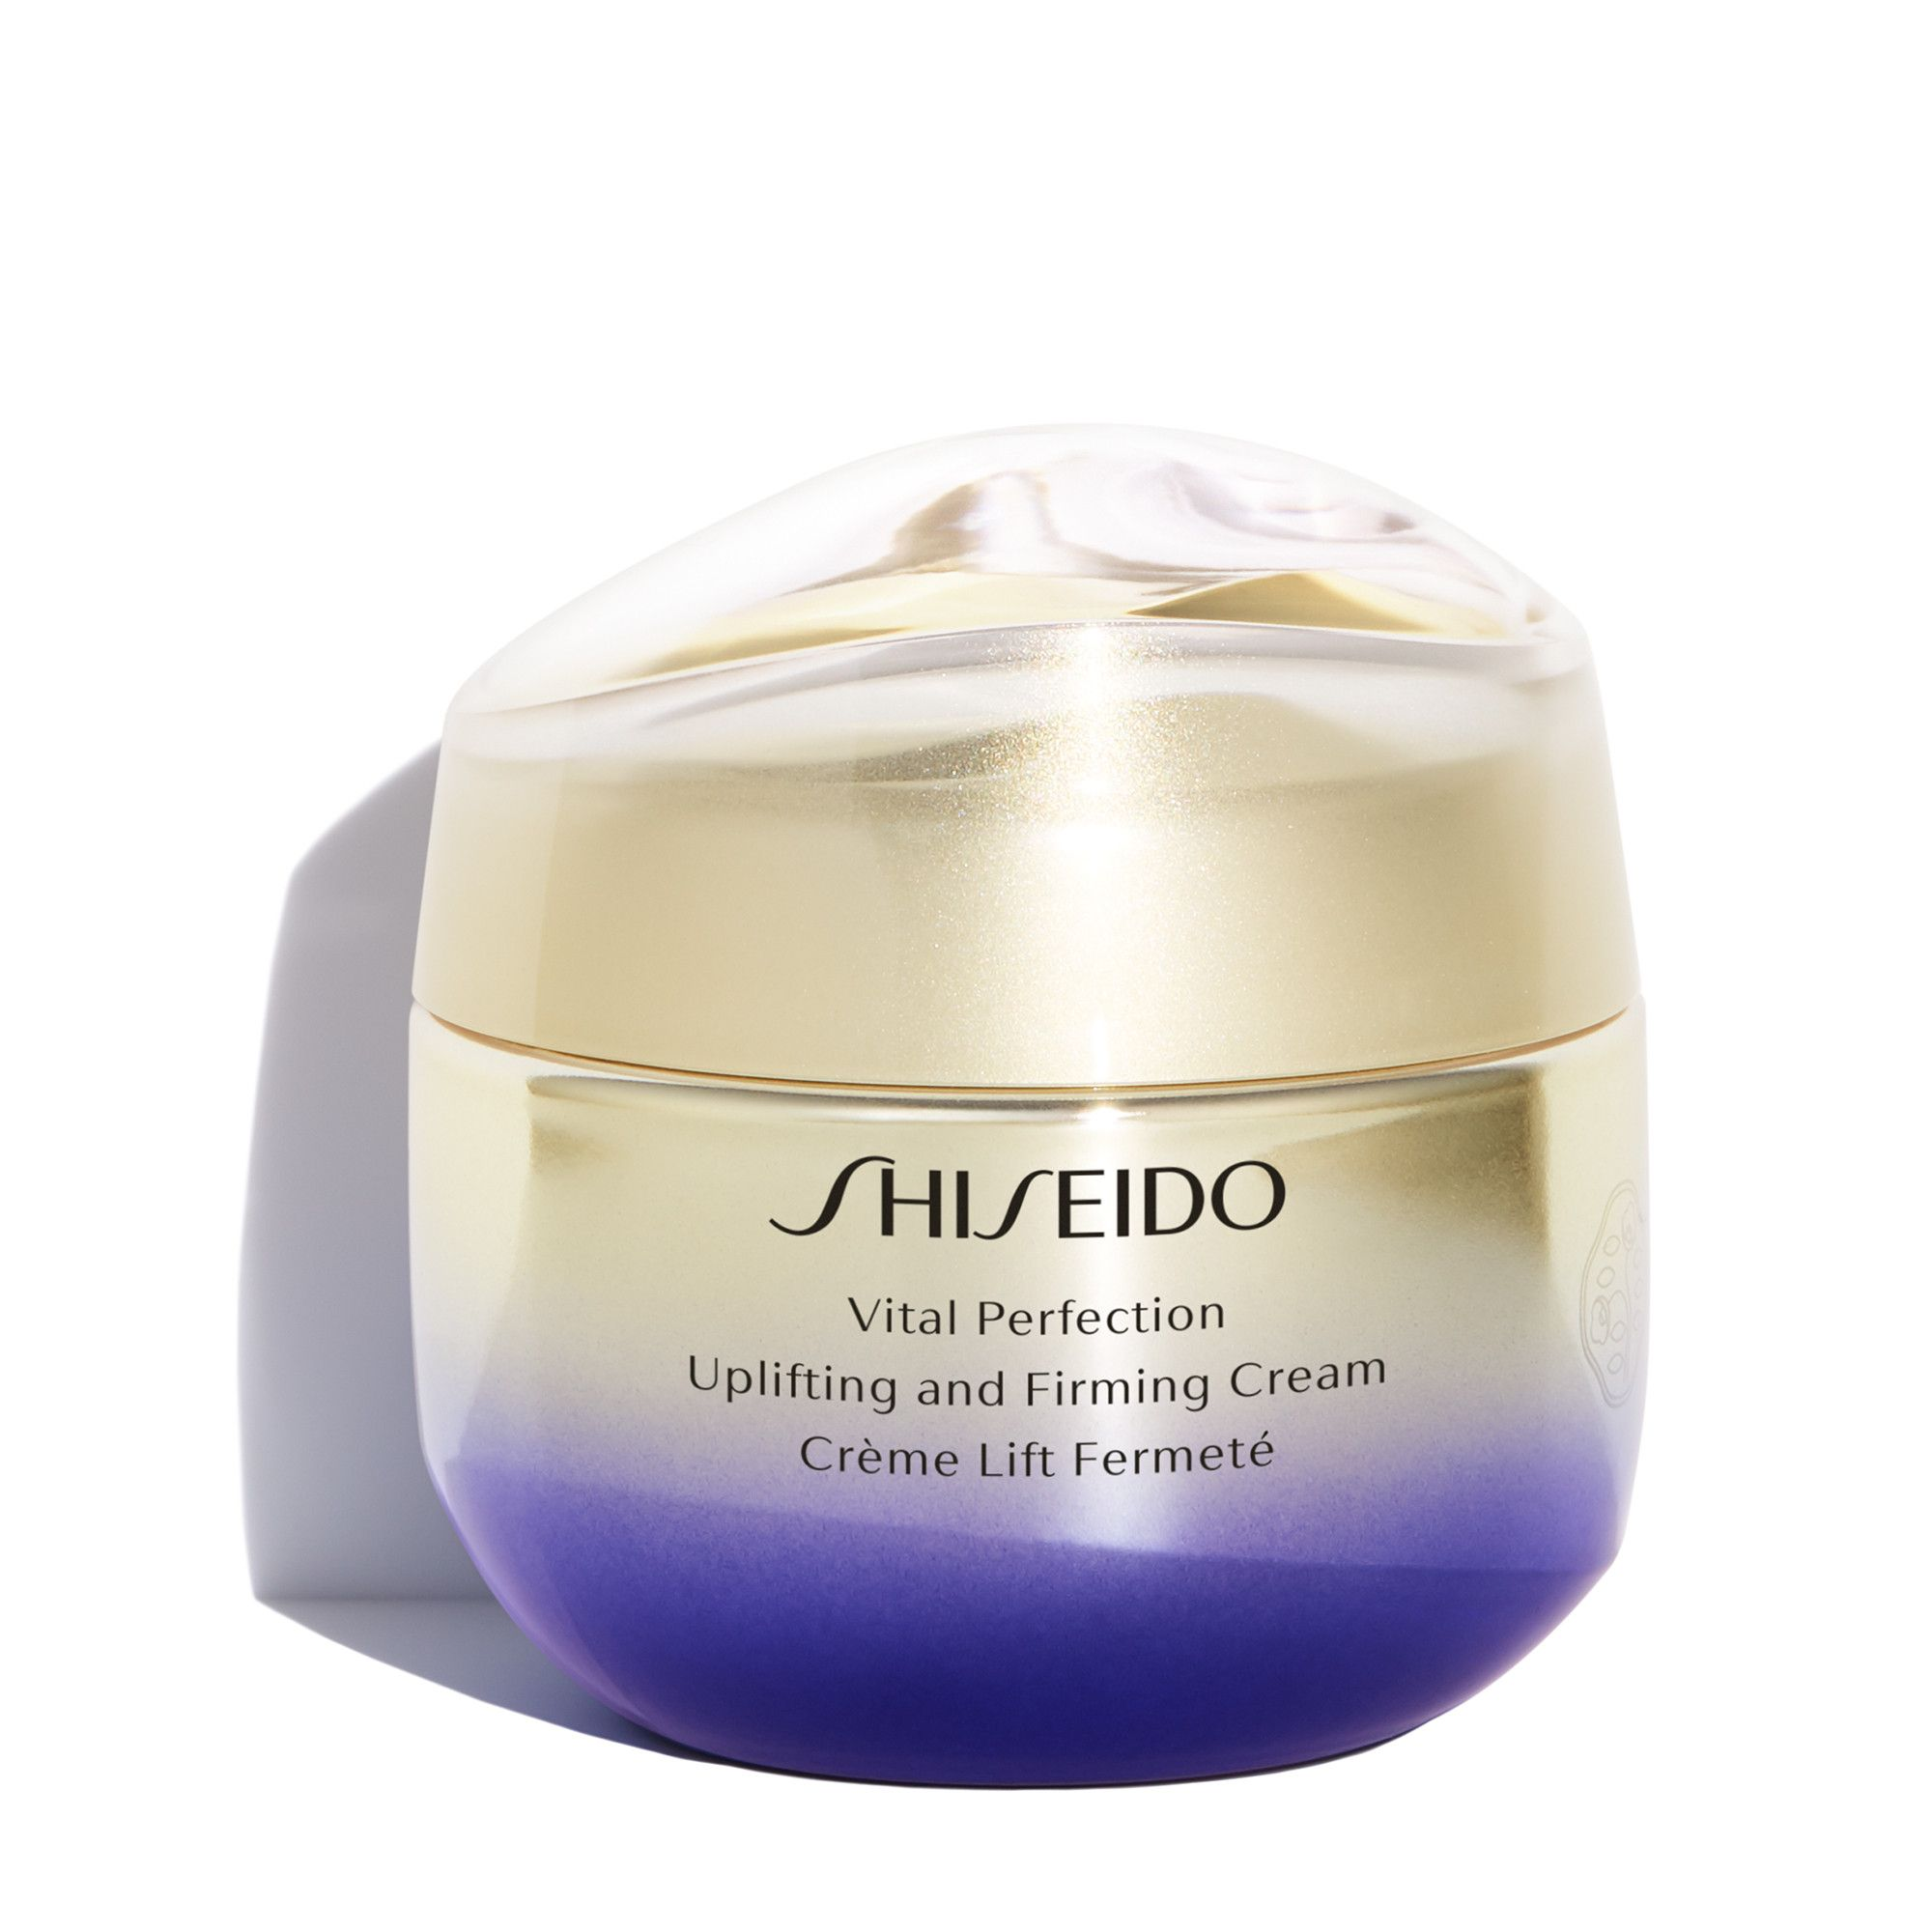 Uplifting And Firming Cream In 2020 Firming Cream Firming Treatment Shiseido